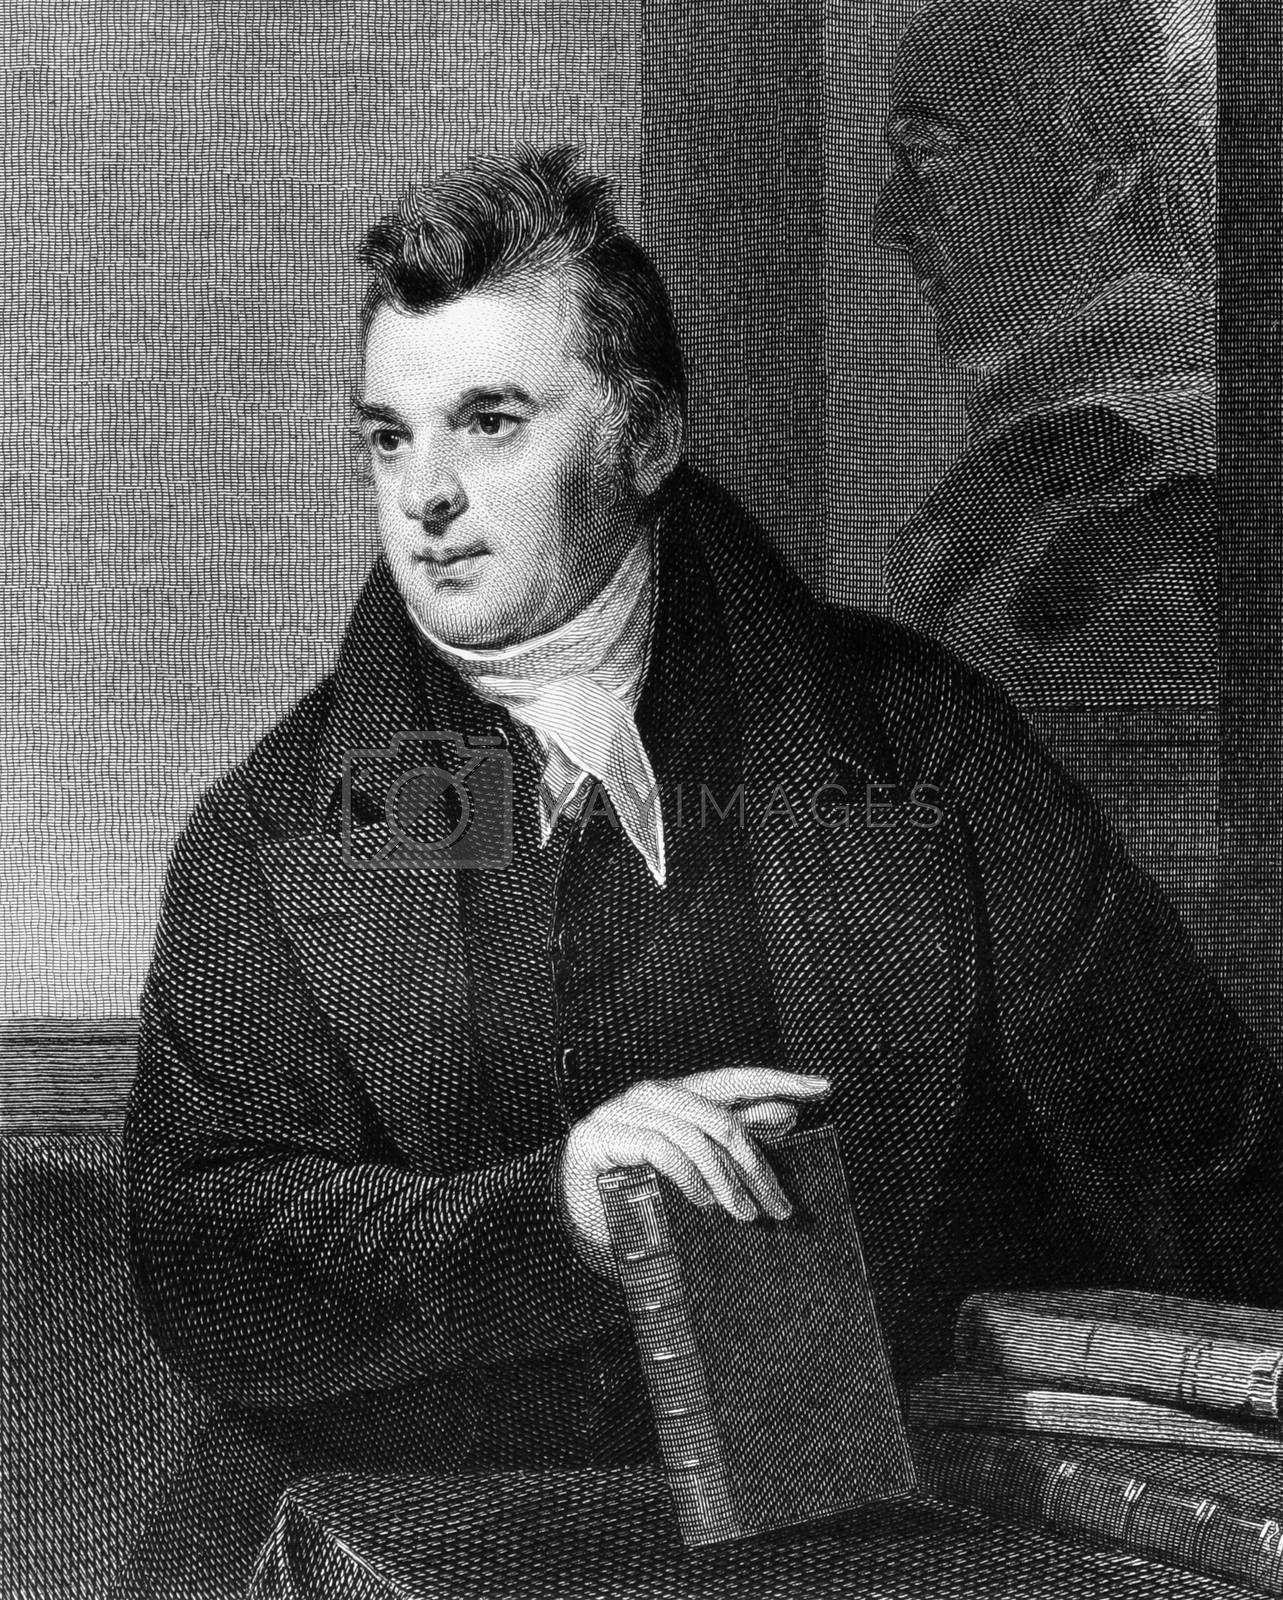 David Hosack (1769-1835) on engraving from 1835. Noted physician, botanist and educator. Engraved by A.B.Durrand and published in''National Portrait Gallery of Distinguished Americans Volume II'',USA,1835.